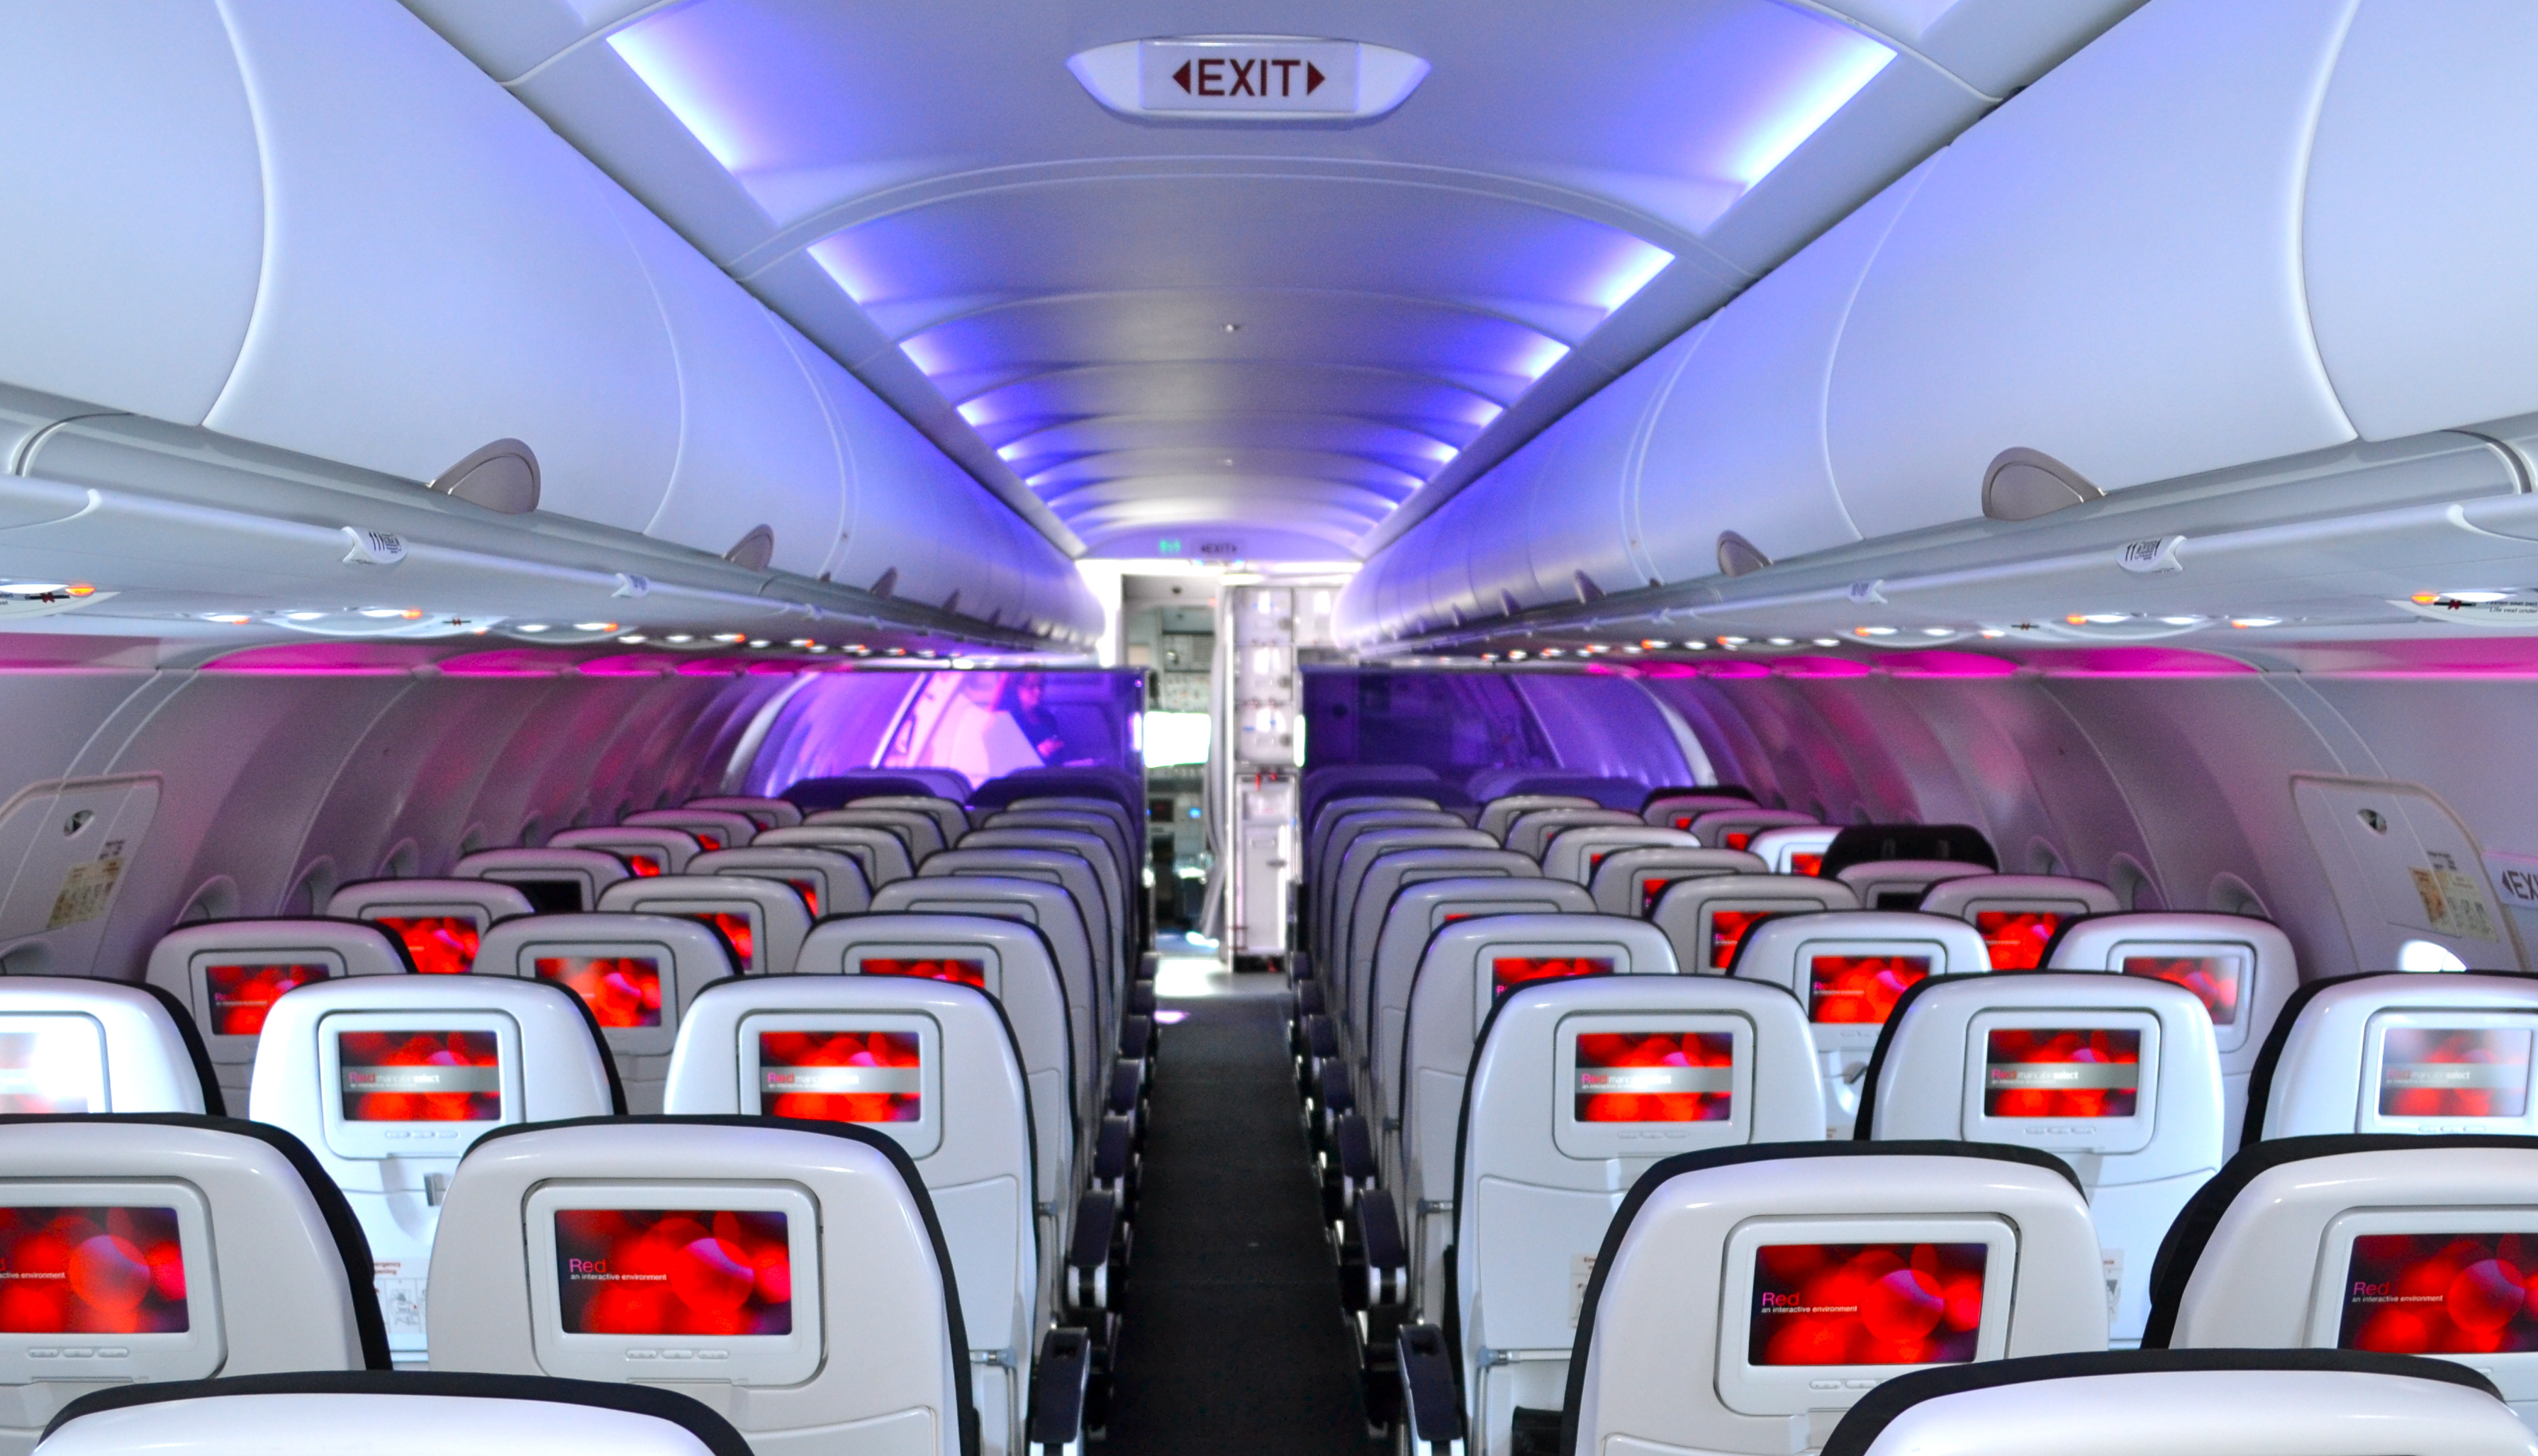 Virgin America Forces Staff To Change Passwords After A